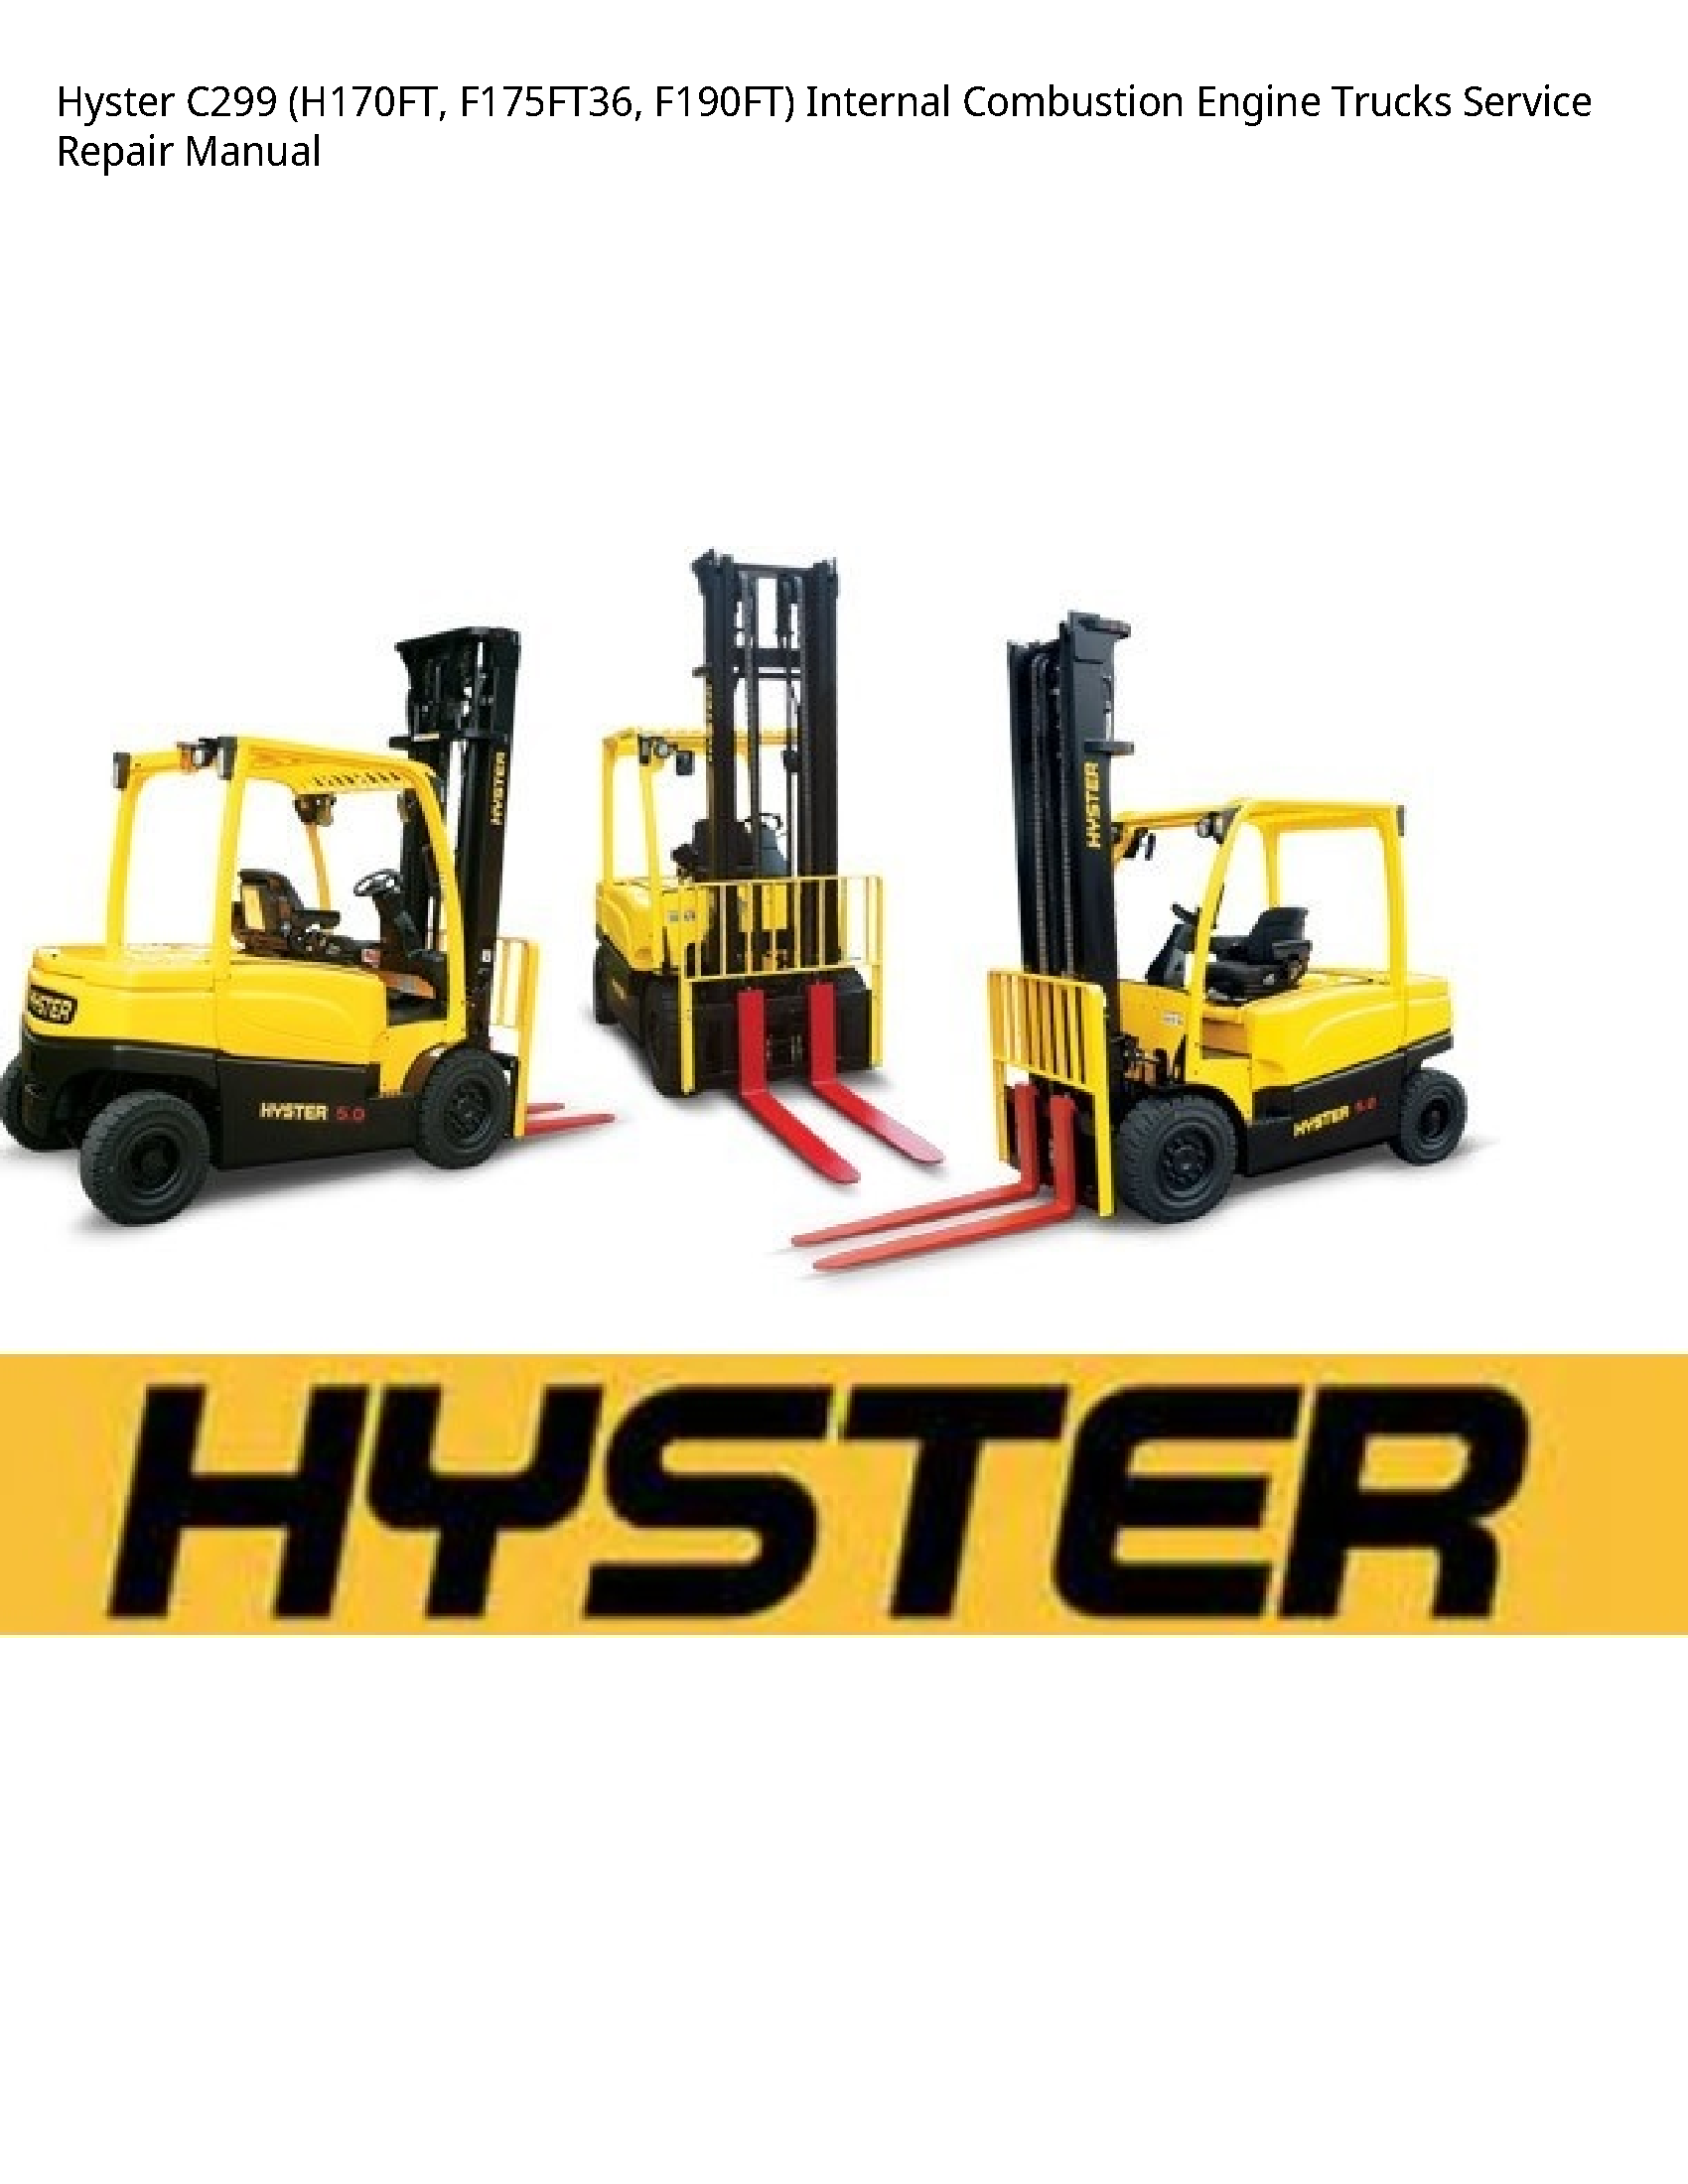 Hyster C299 Internal Combustion Engine Trucks manual